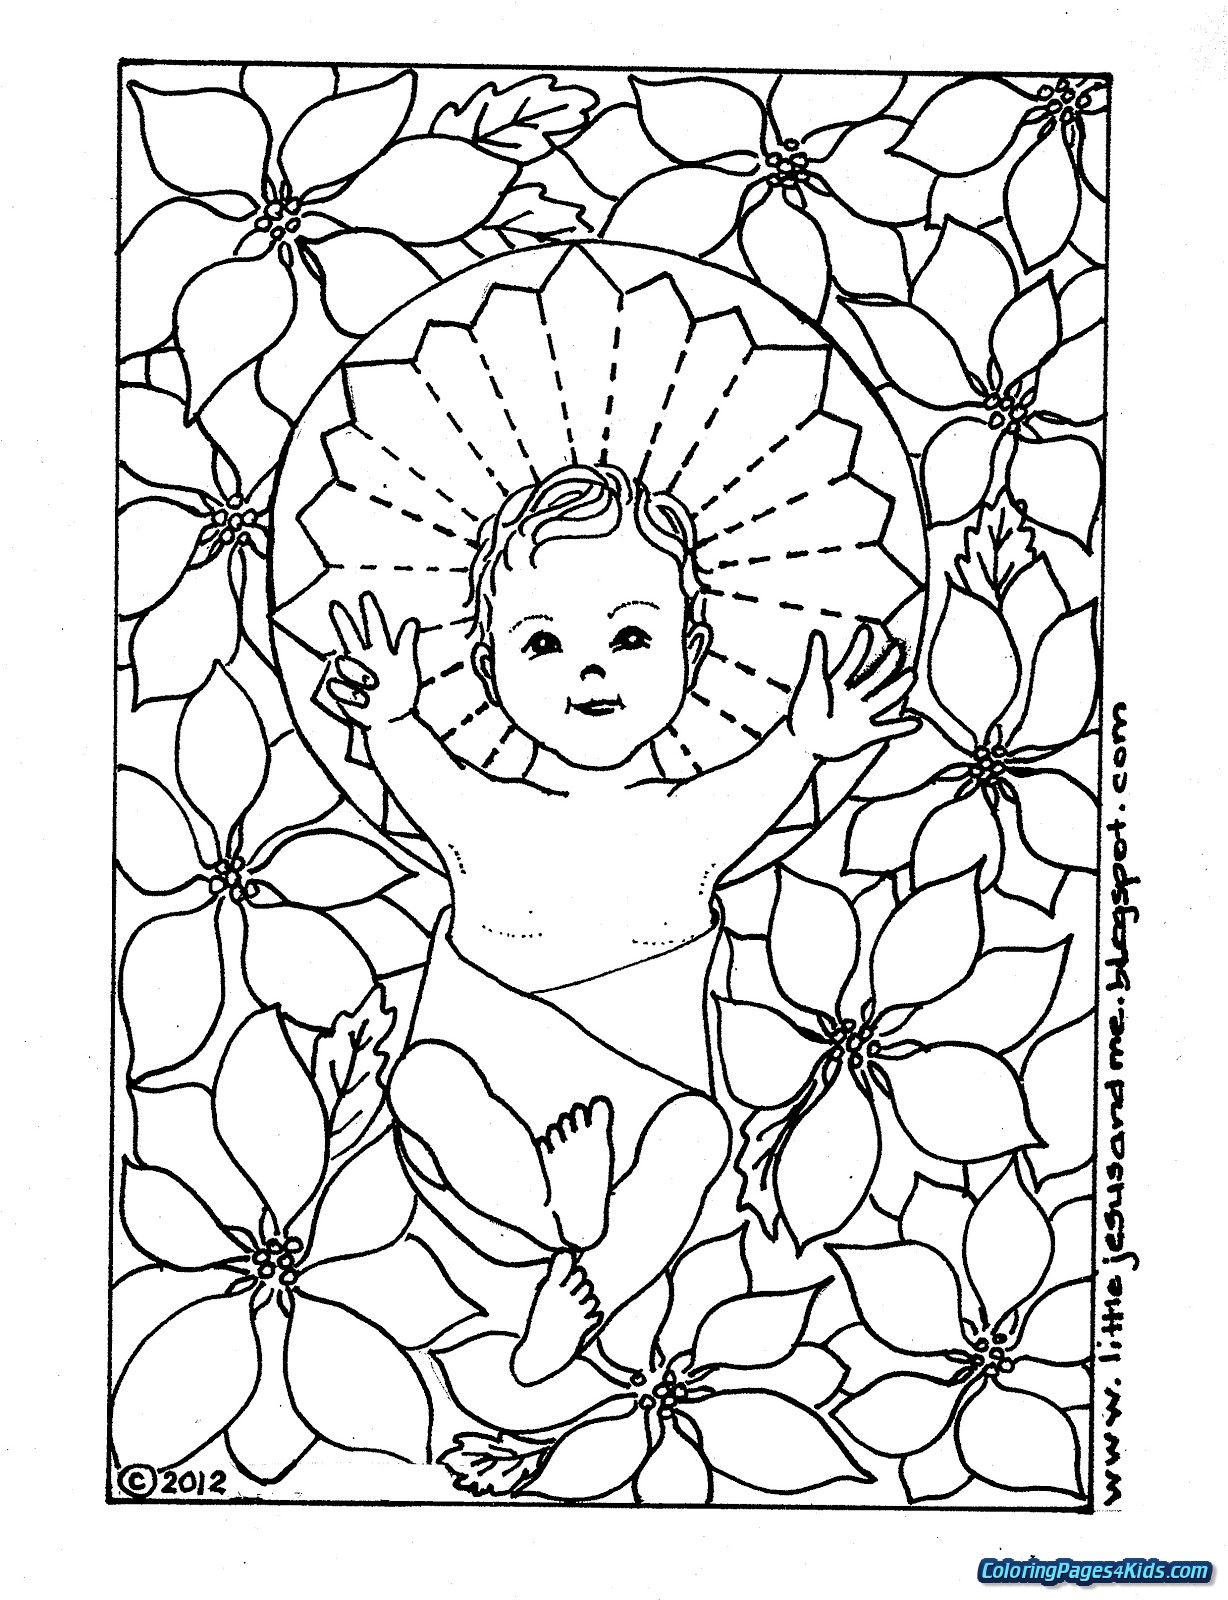 Image Result For Baby Jesus Coloring Page Jesus Coloring Pages Christian Coloring Coloring Pages